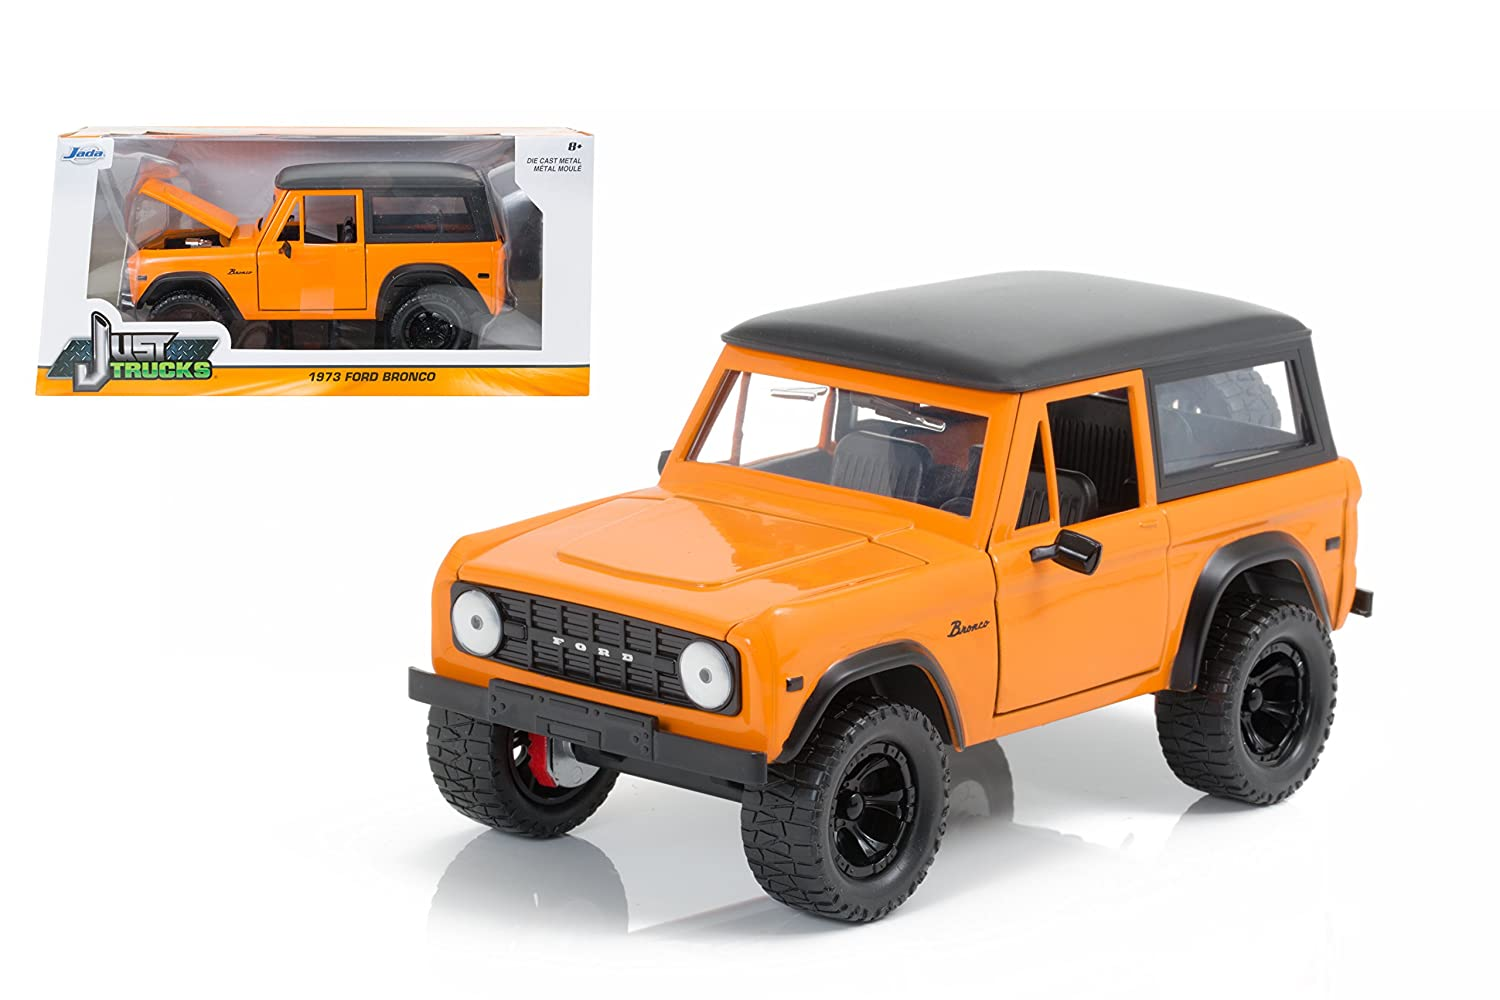 NEW 1 24 W B JADA TOYS JUST TRUCKS COLLECTION ORANGE 1973 FORD BRONCO Diecast Model Car By Jada Toys